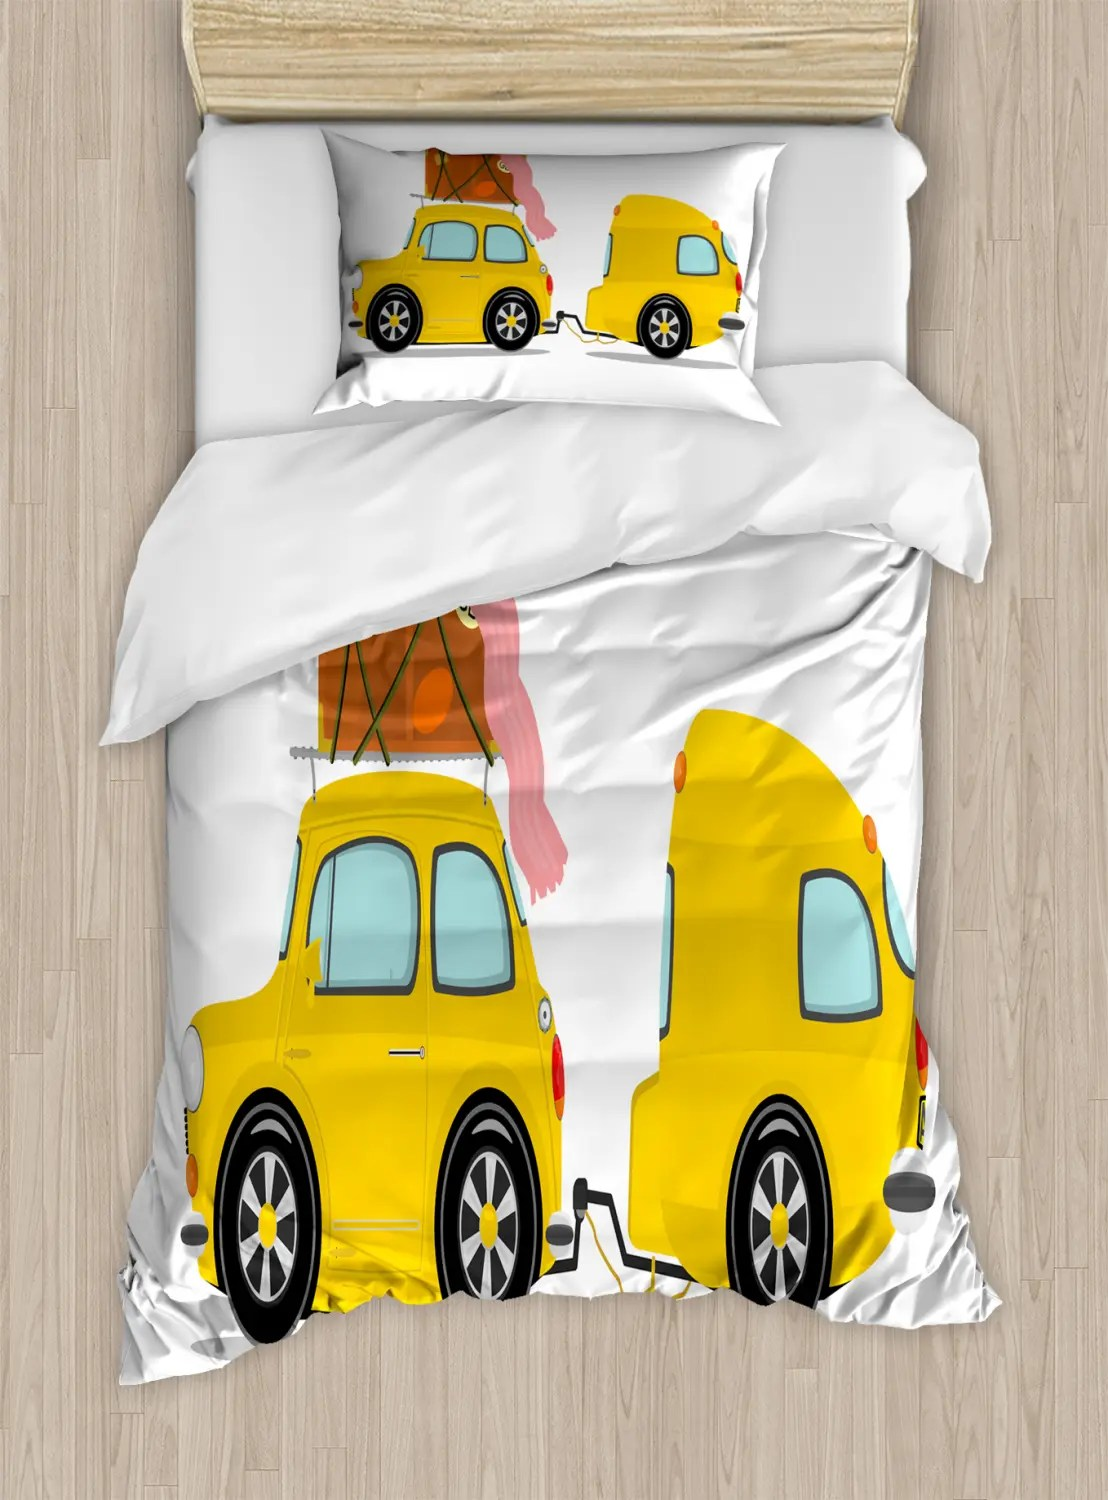 Camper Duvet Cover Set Twin Queen King Sizes With Pillow